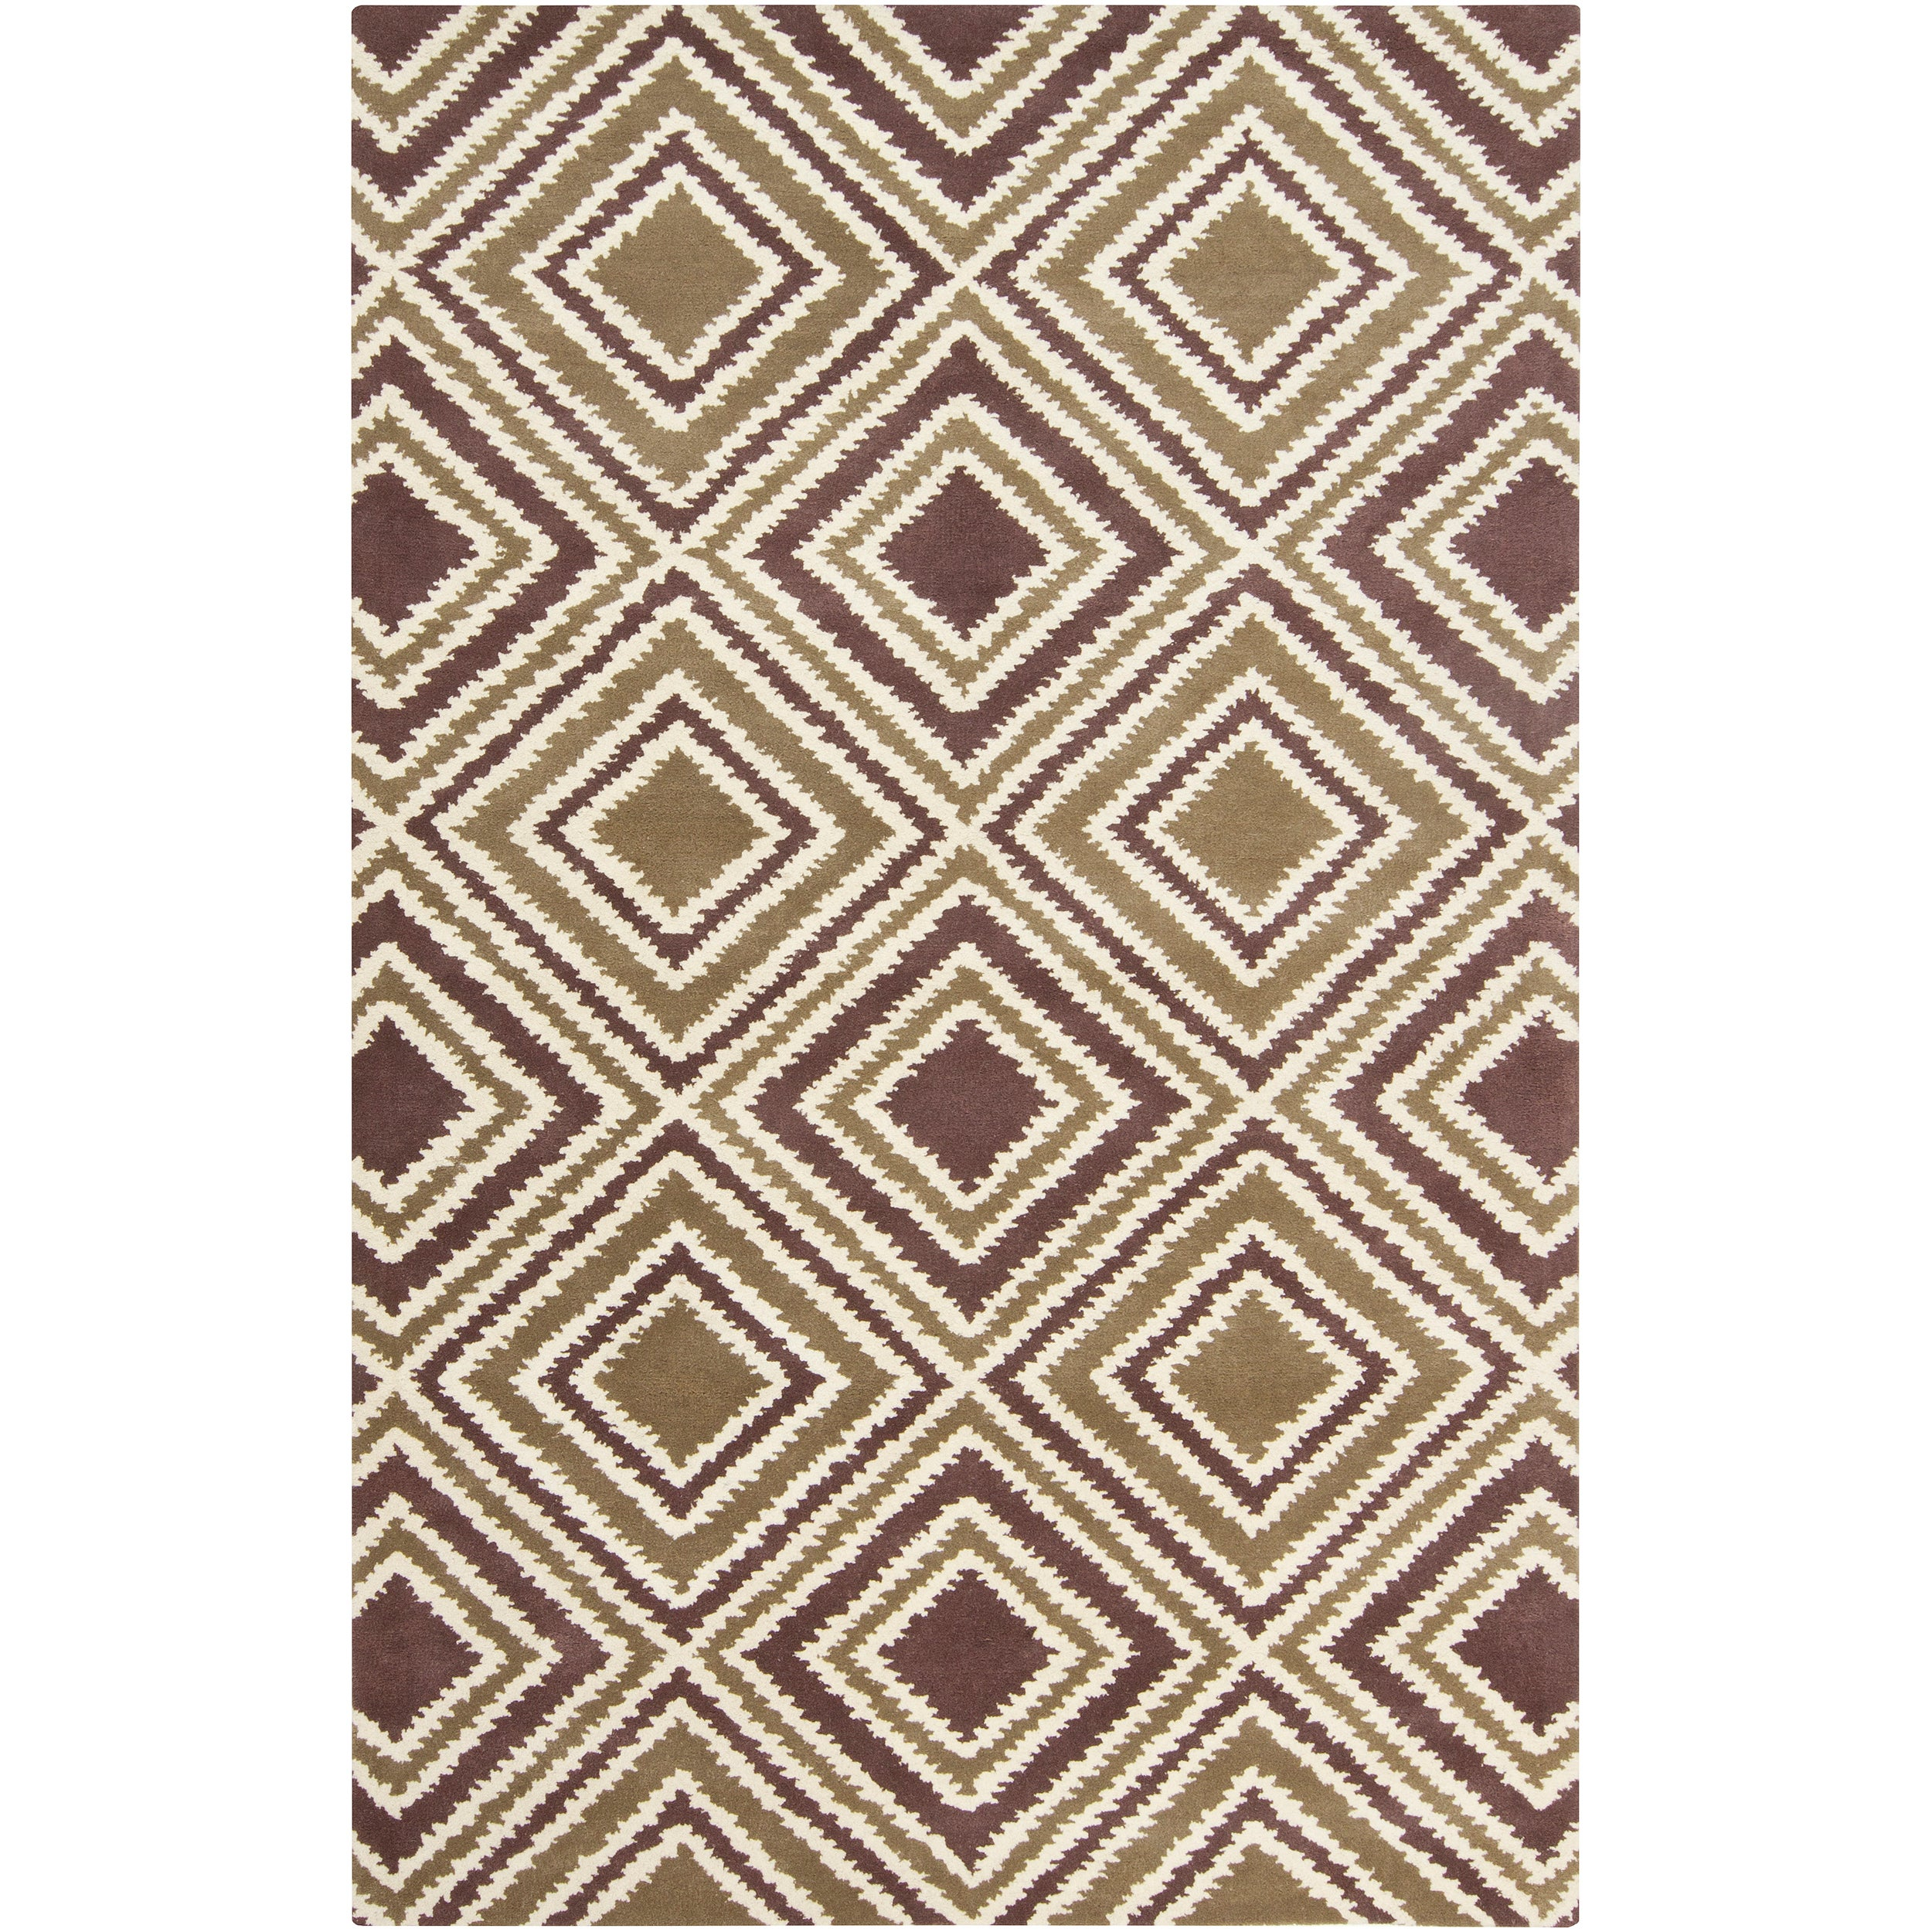 Hand-tufted Olive New York Ave Geometric Diamond Wool Area Rug (9' x 13') - 9' x 13'